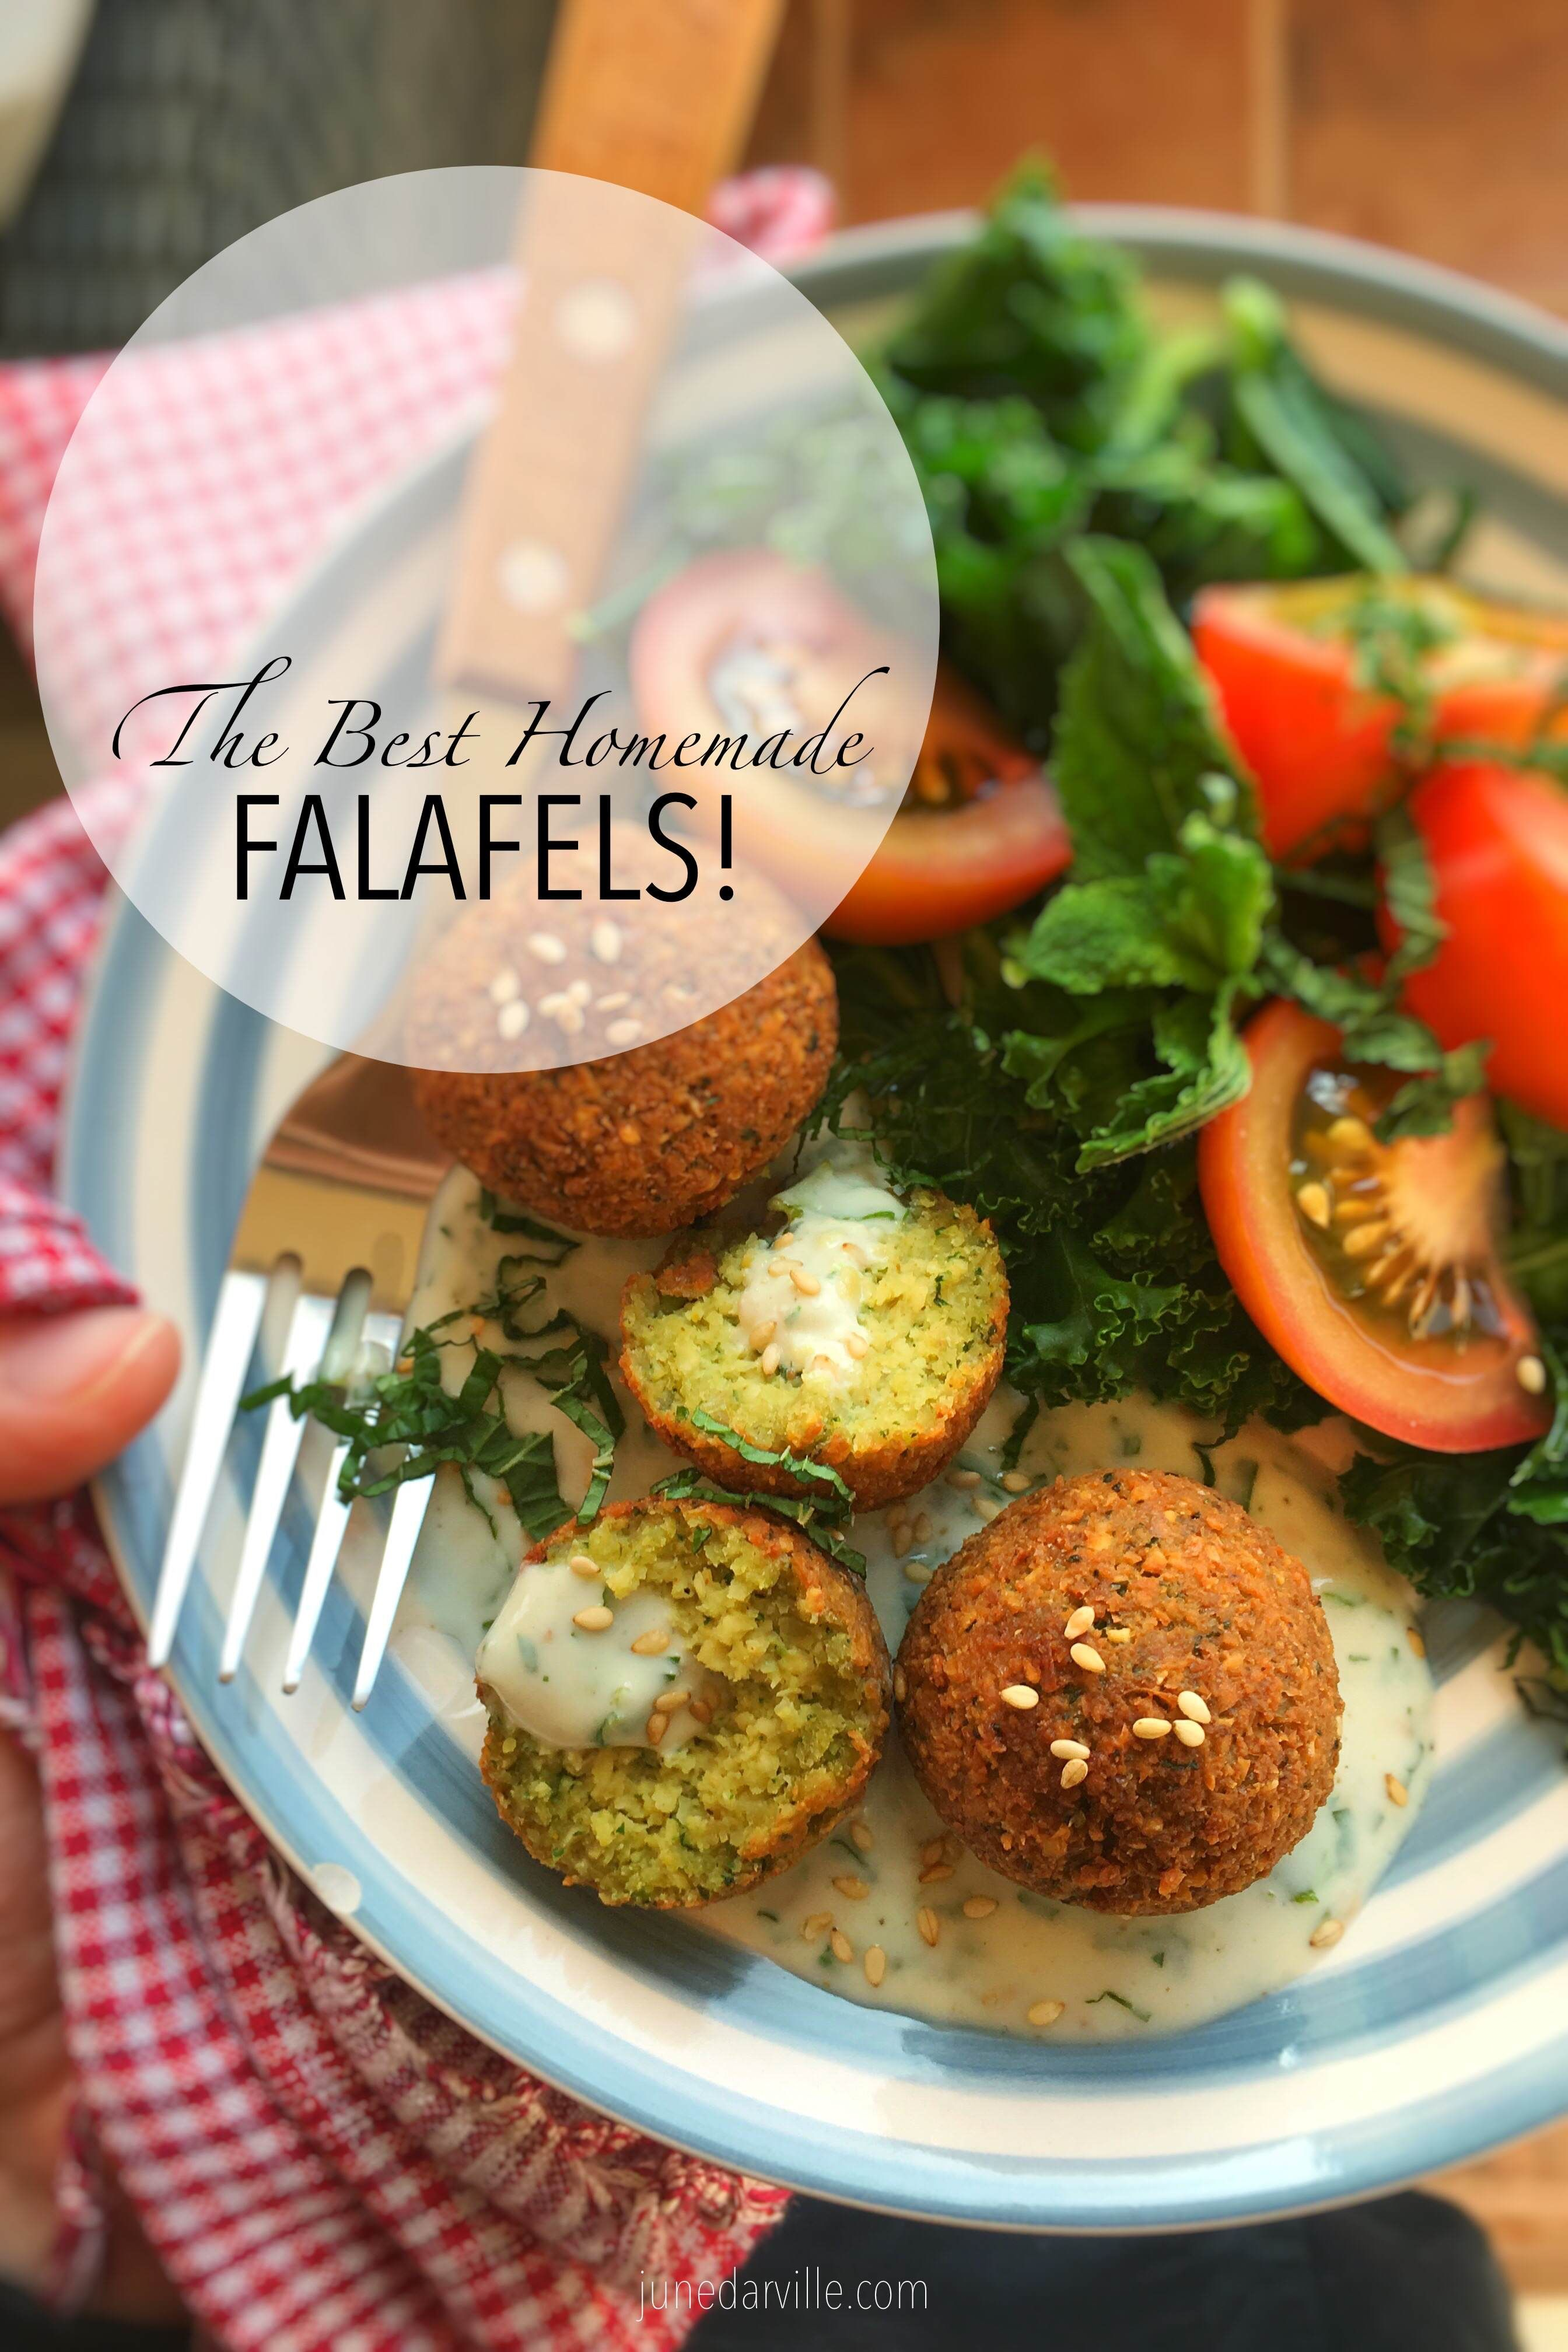 The best homemade falafels are made with my kitchenaid cook falafels are my favorite vegetarian food and they are so easy to make at home heres the best homemade falafel recipe you will ever make i swear forumfinder Image collections